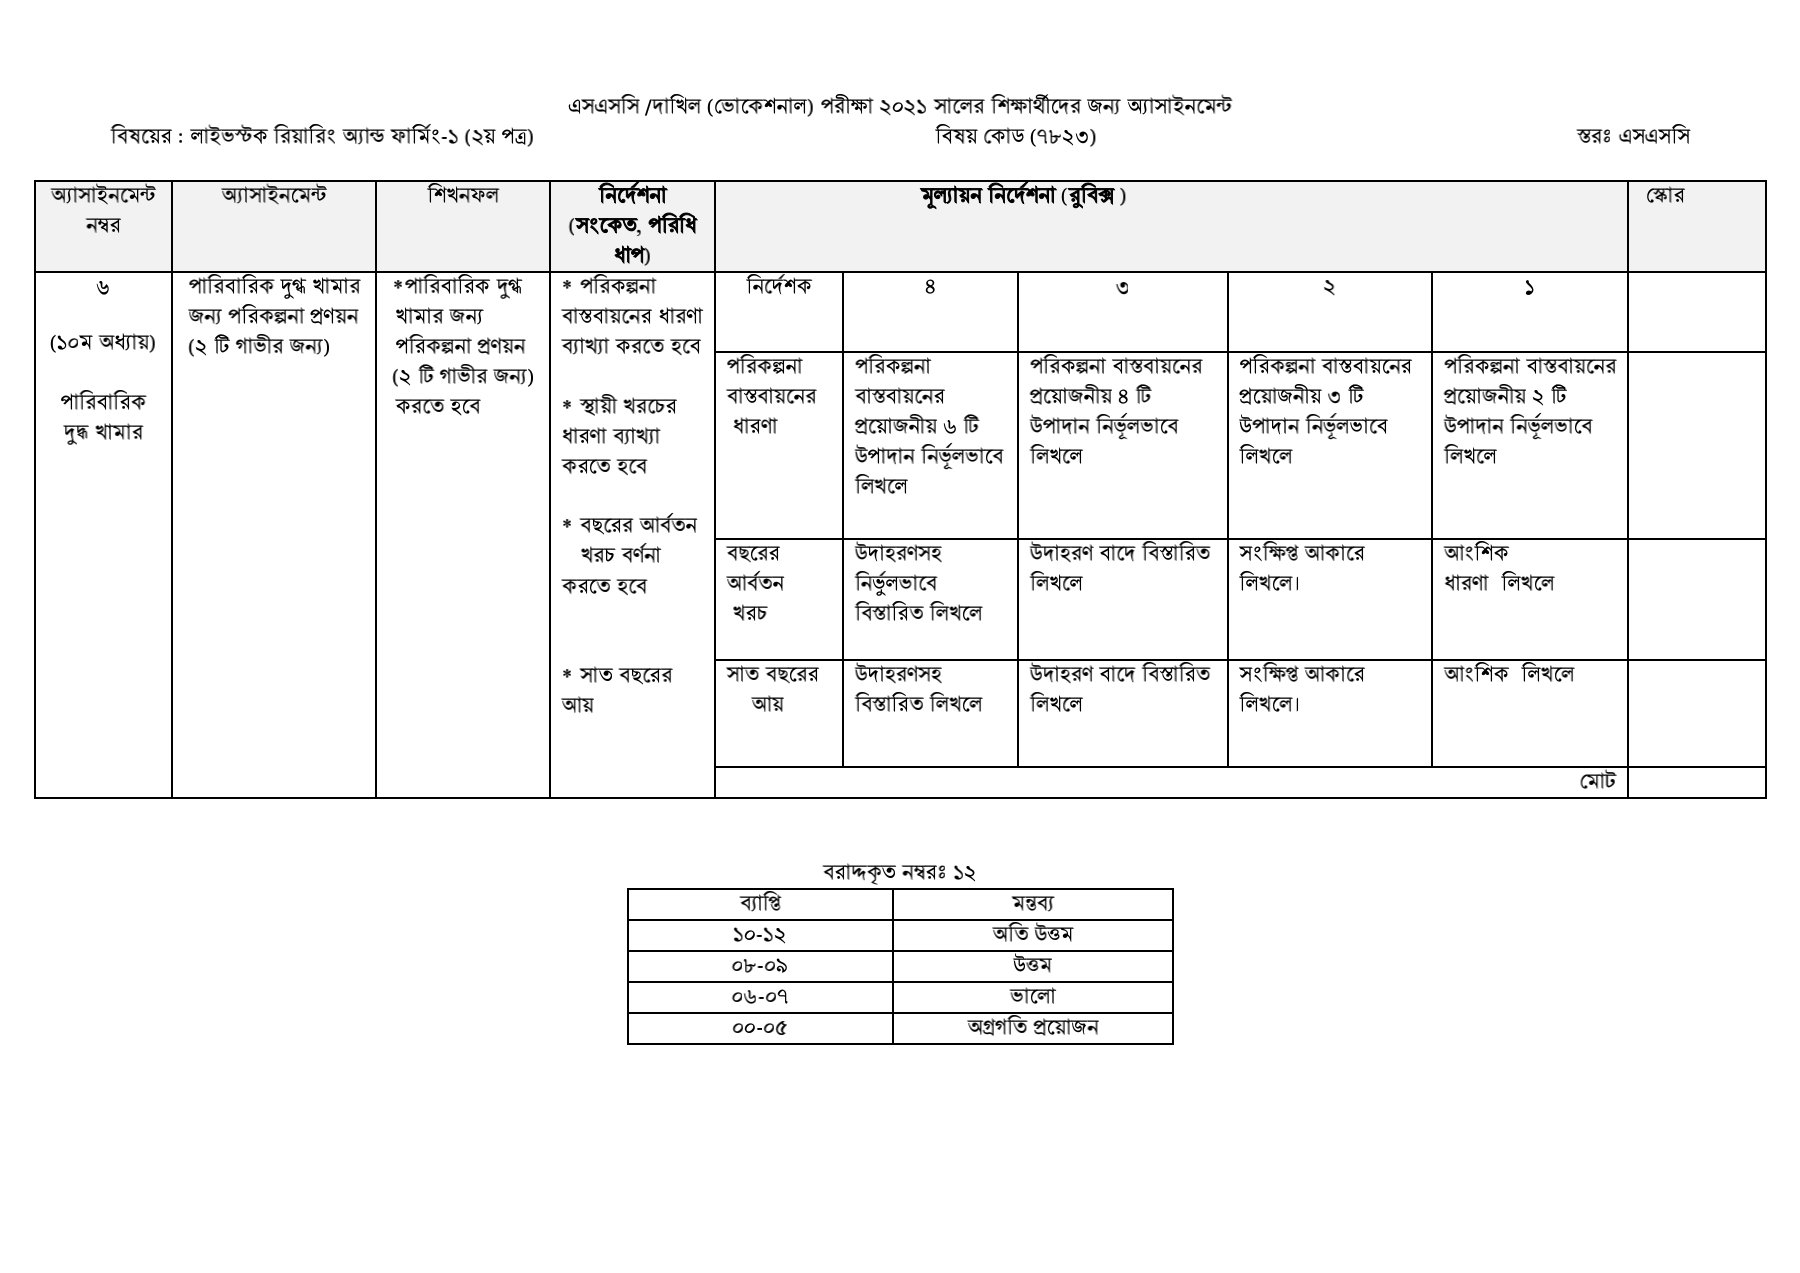 SSC / Dakhil (Vocational) Livestock Rearing and Farming Assignment Answer 2021 4